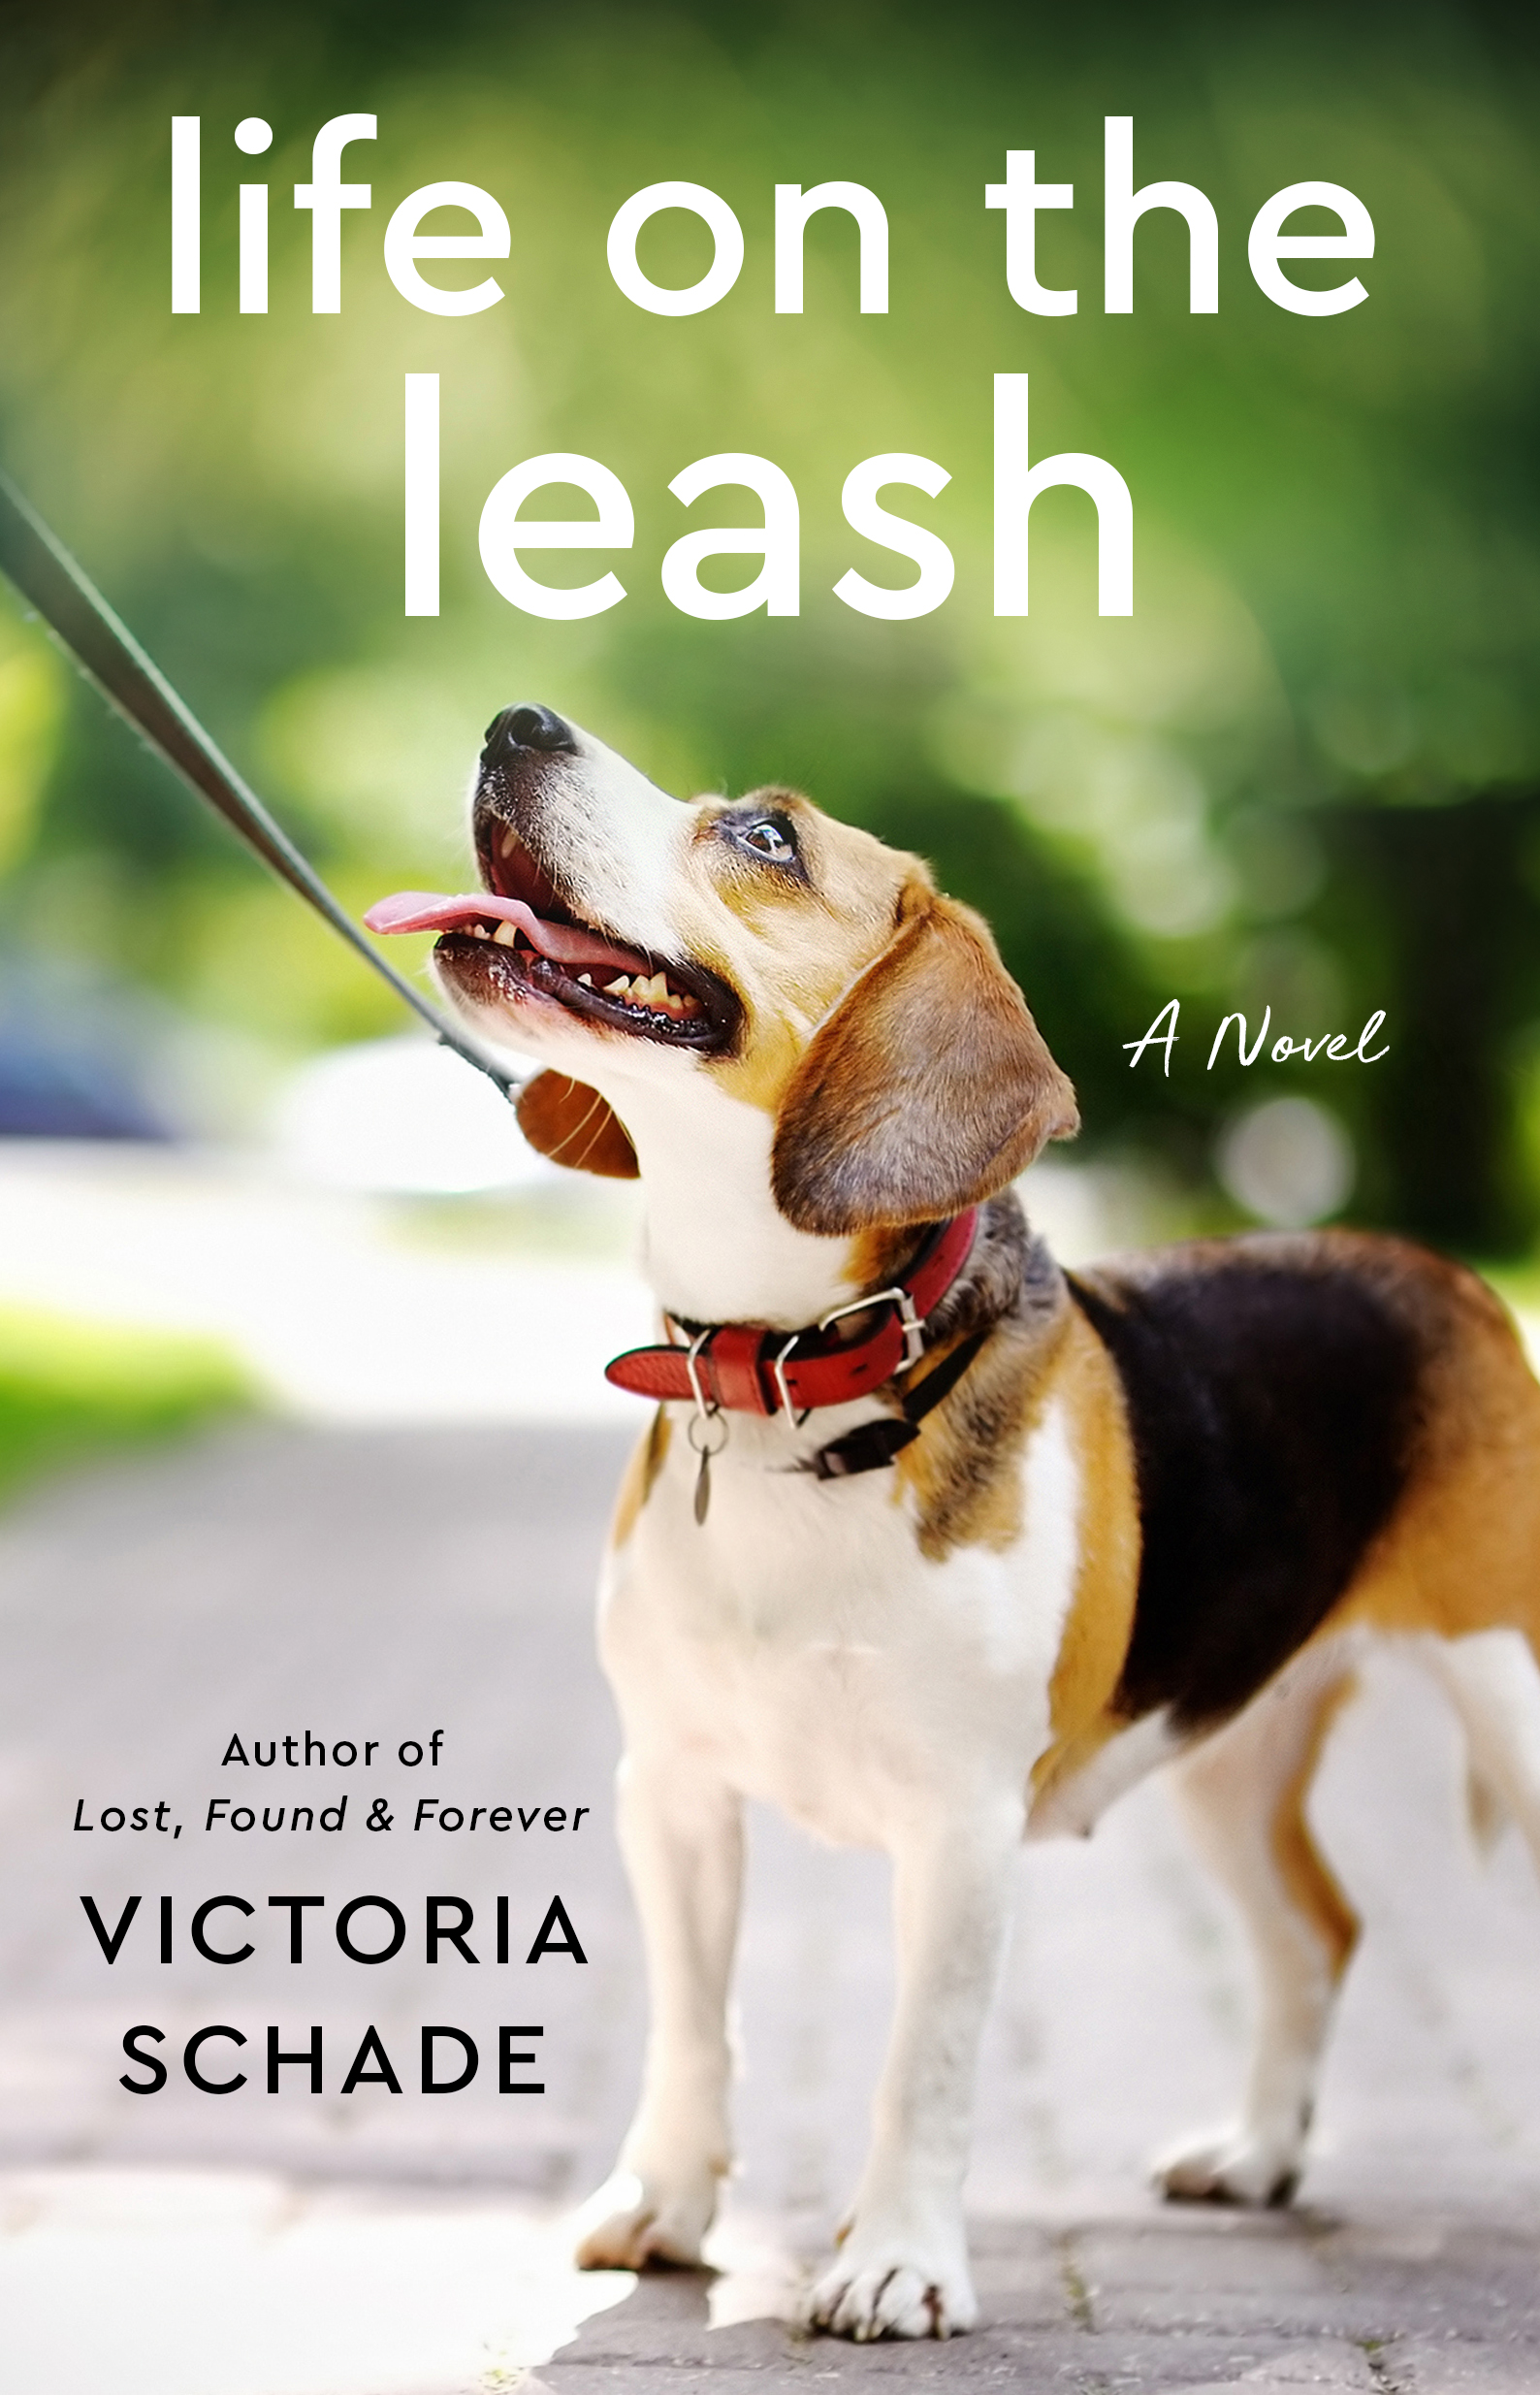 Life on the leash 9781501191688 hr